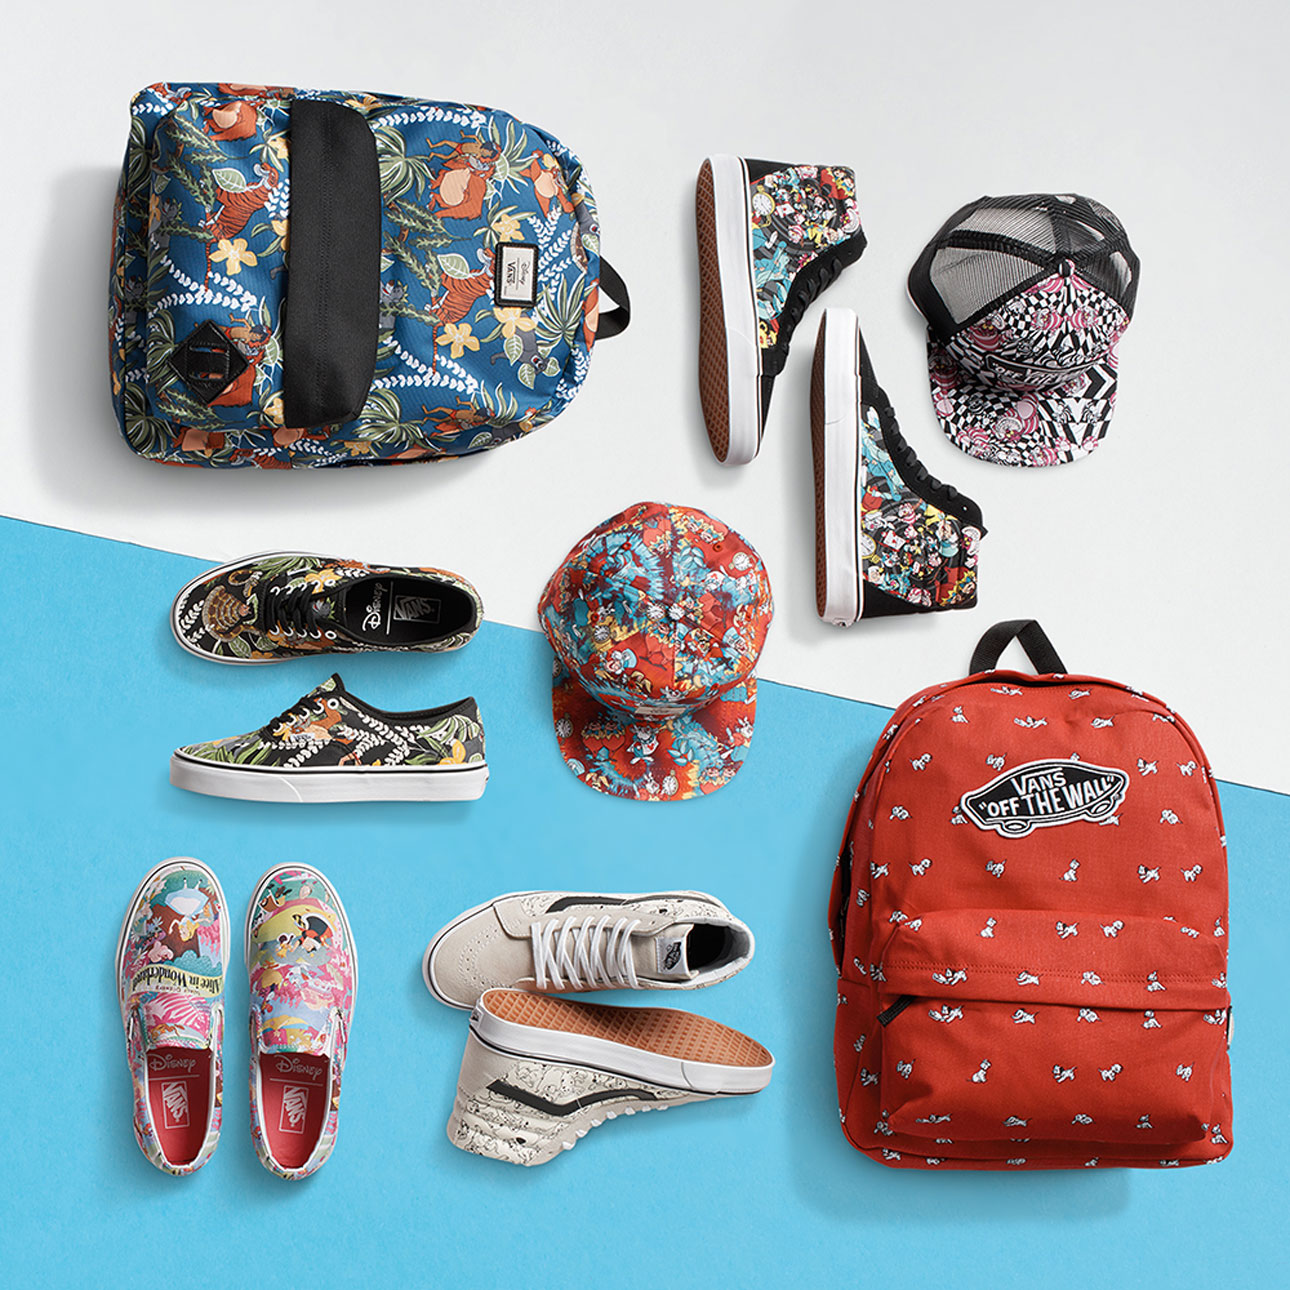 vans disney herfst winter 2015 - vans jungle book - vans 101 dalmatiers - vans alice in wonderland